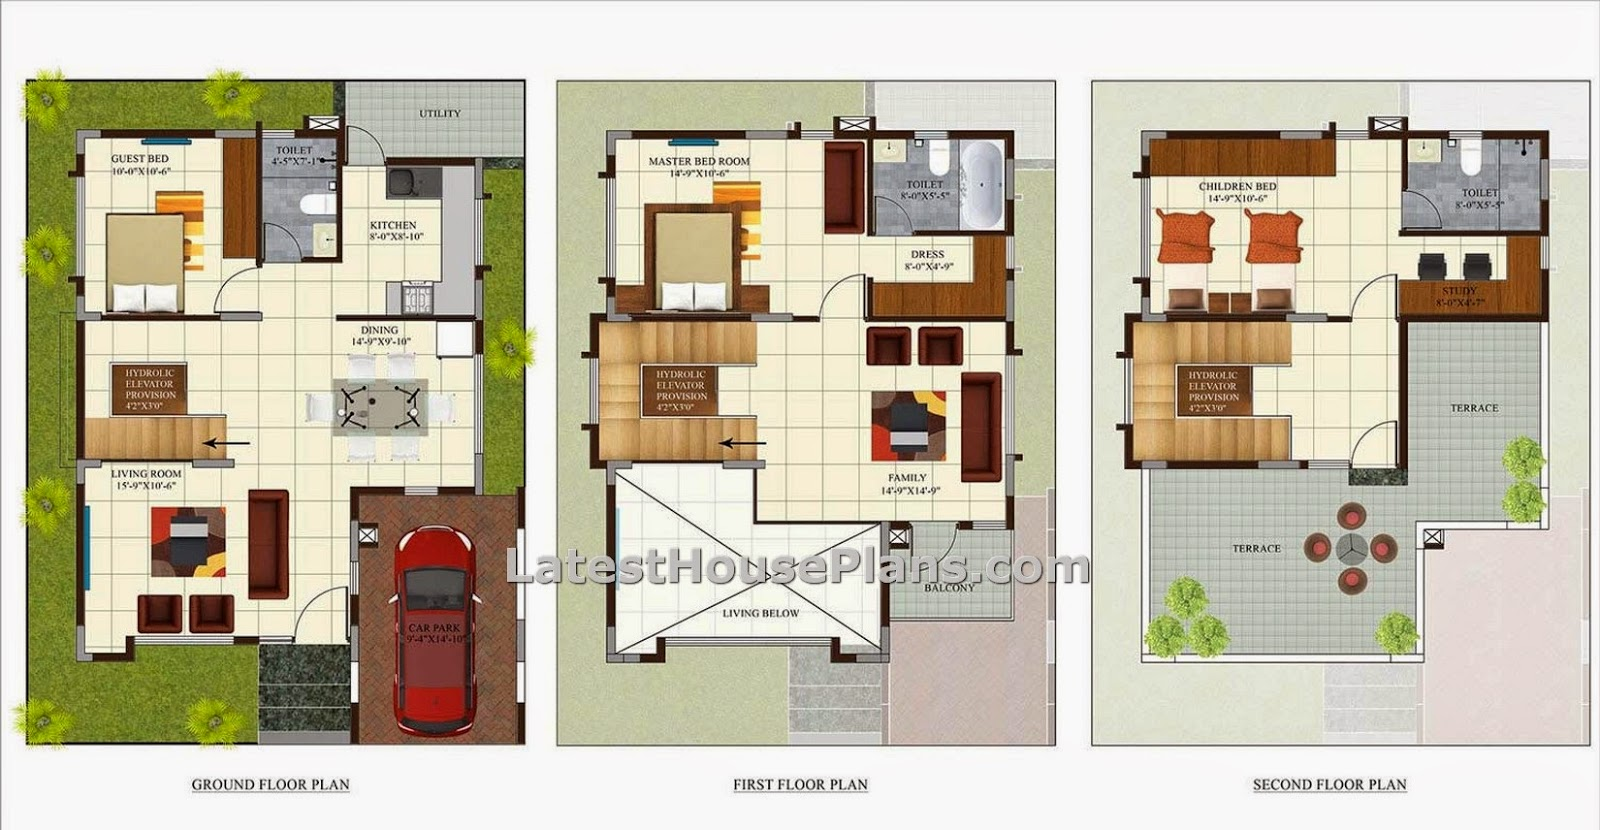 Three bedroom luxury villa house plan in area of 1850 sq 3 bedroom villa floor plans